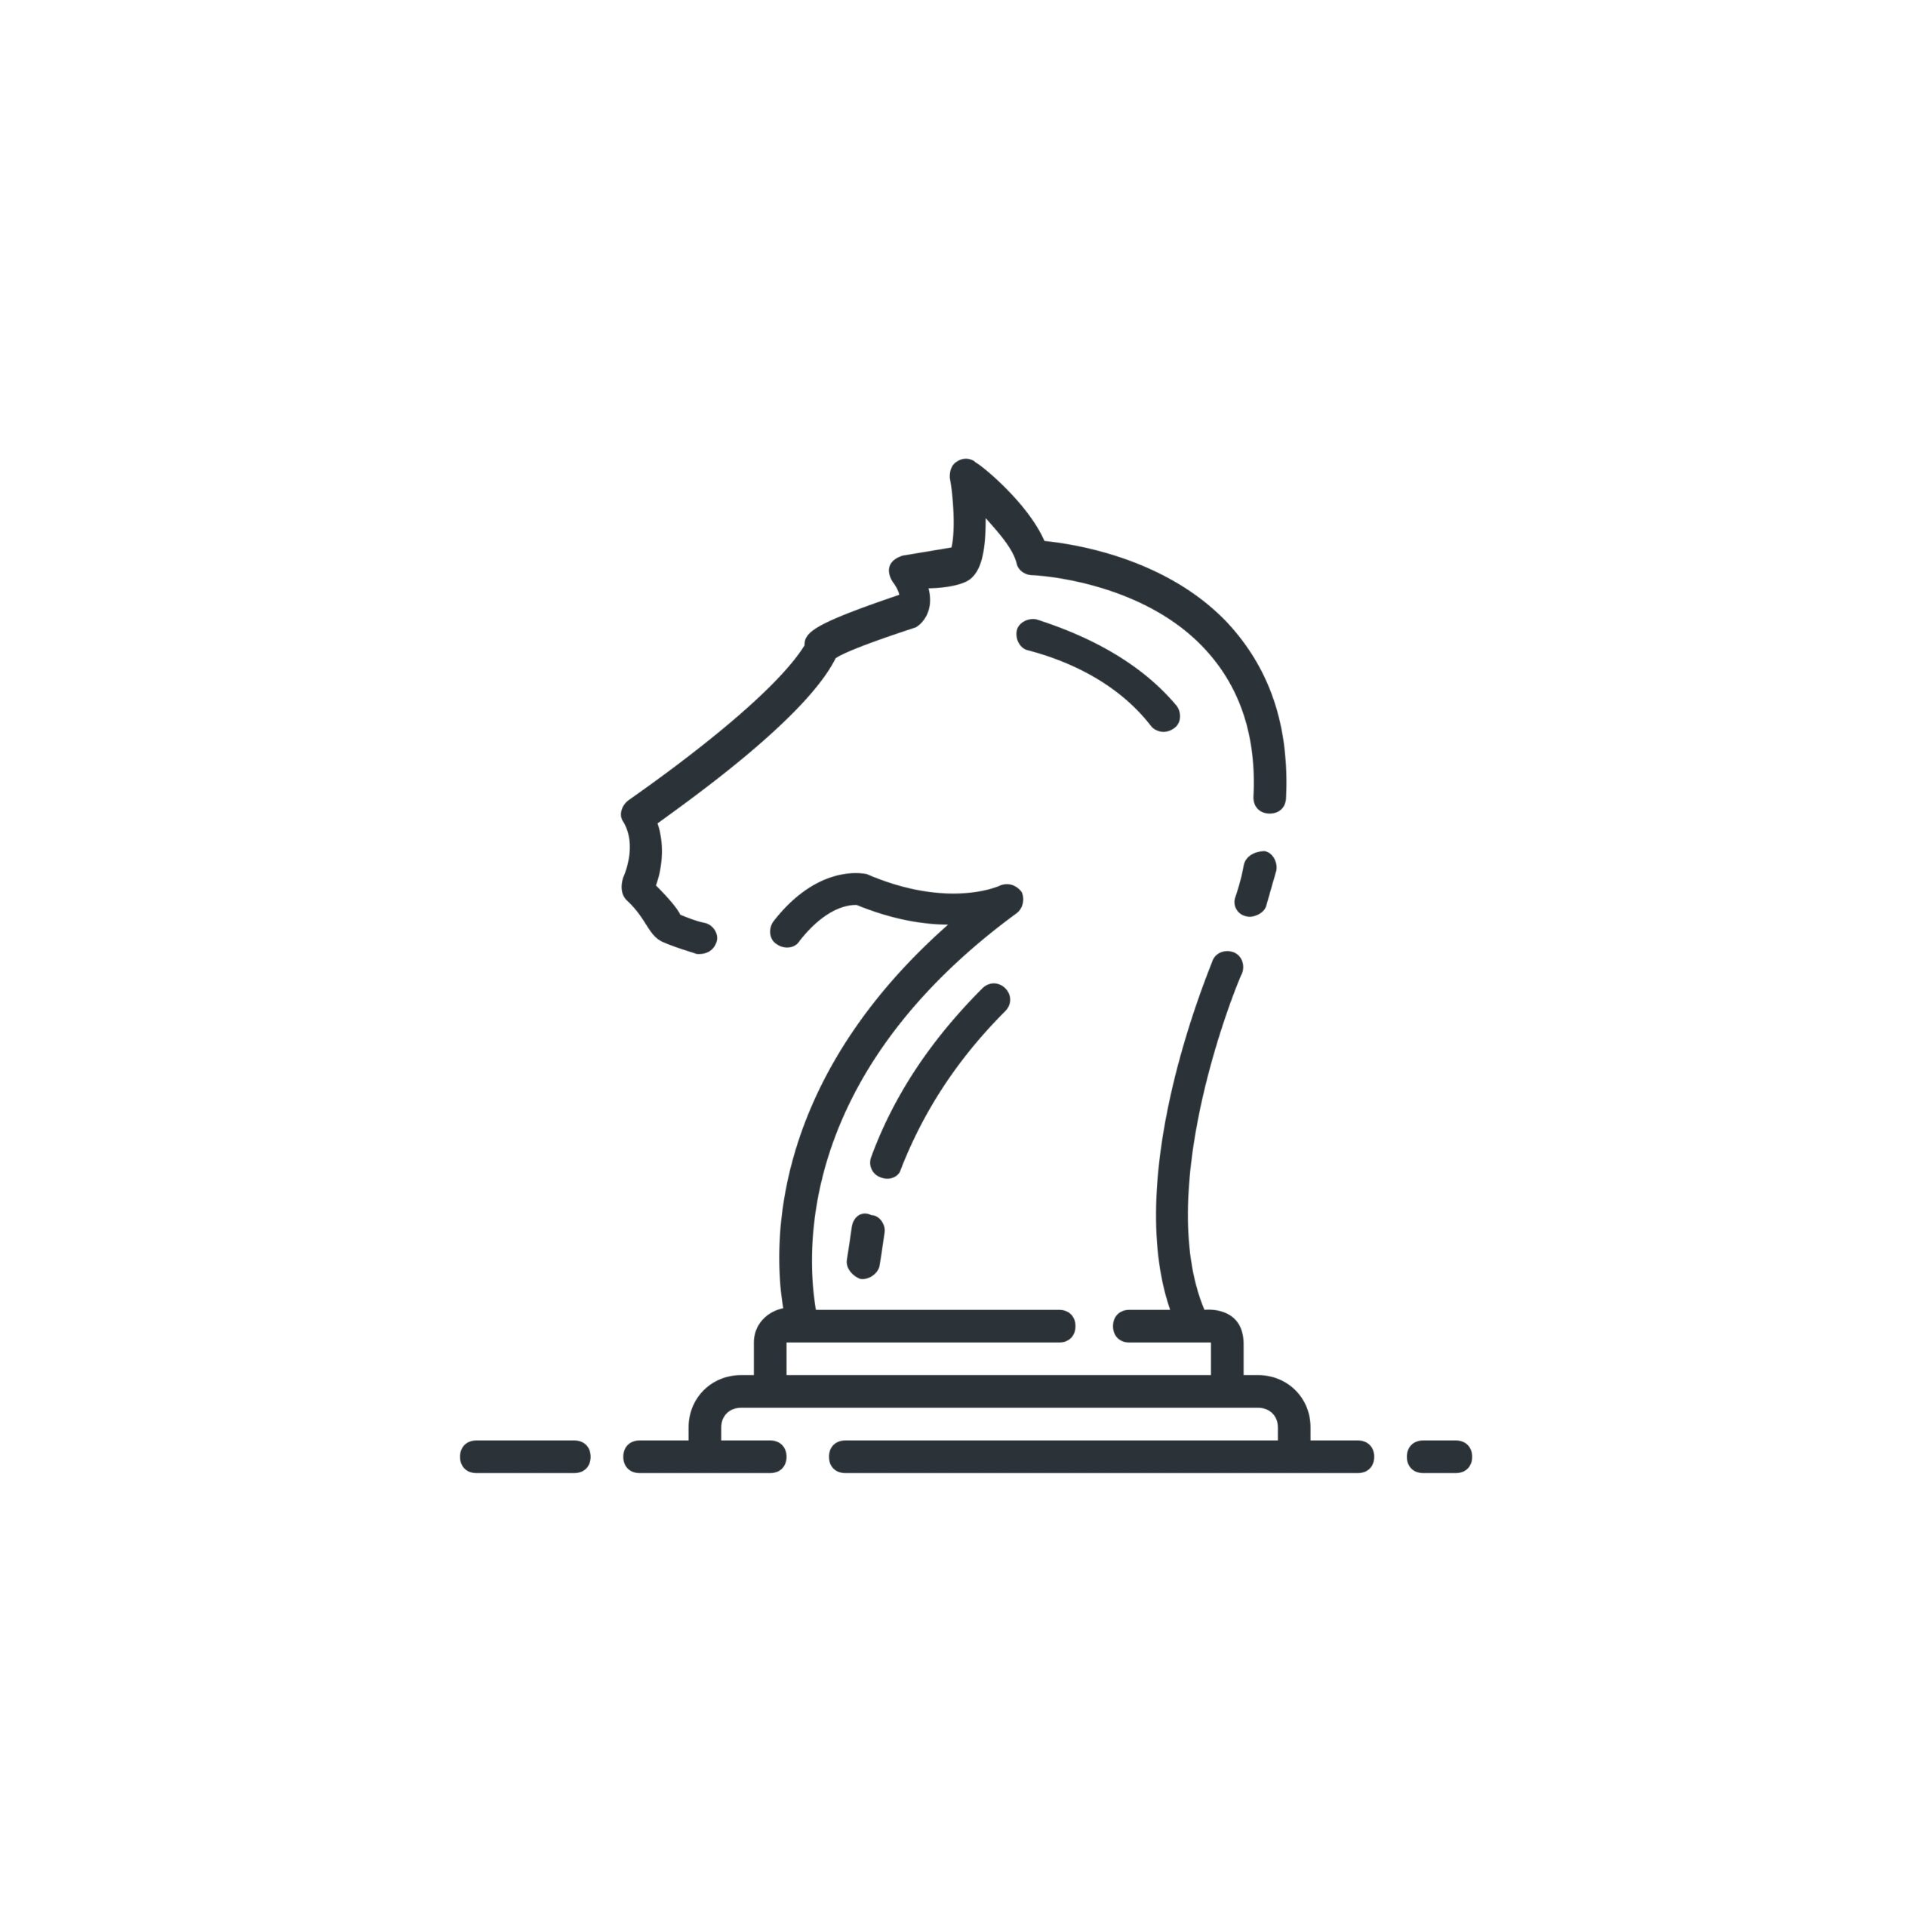 bigstock-strategy-icon-isolated-on-whit-406717190